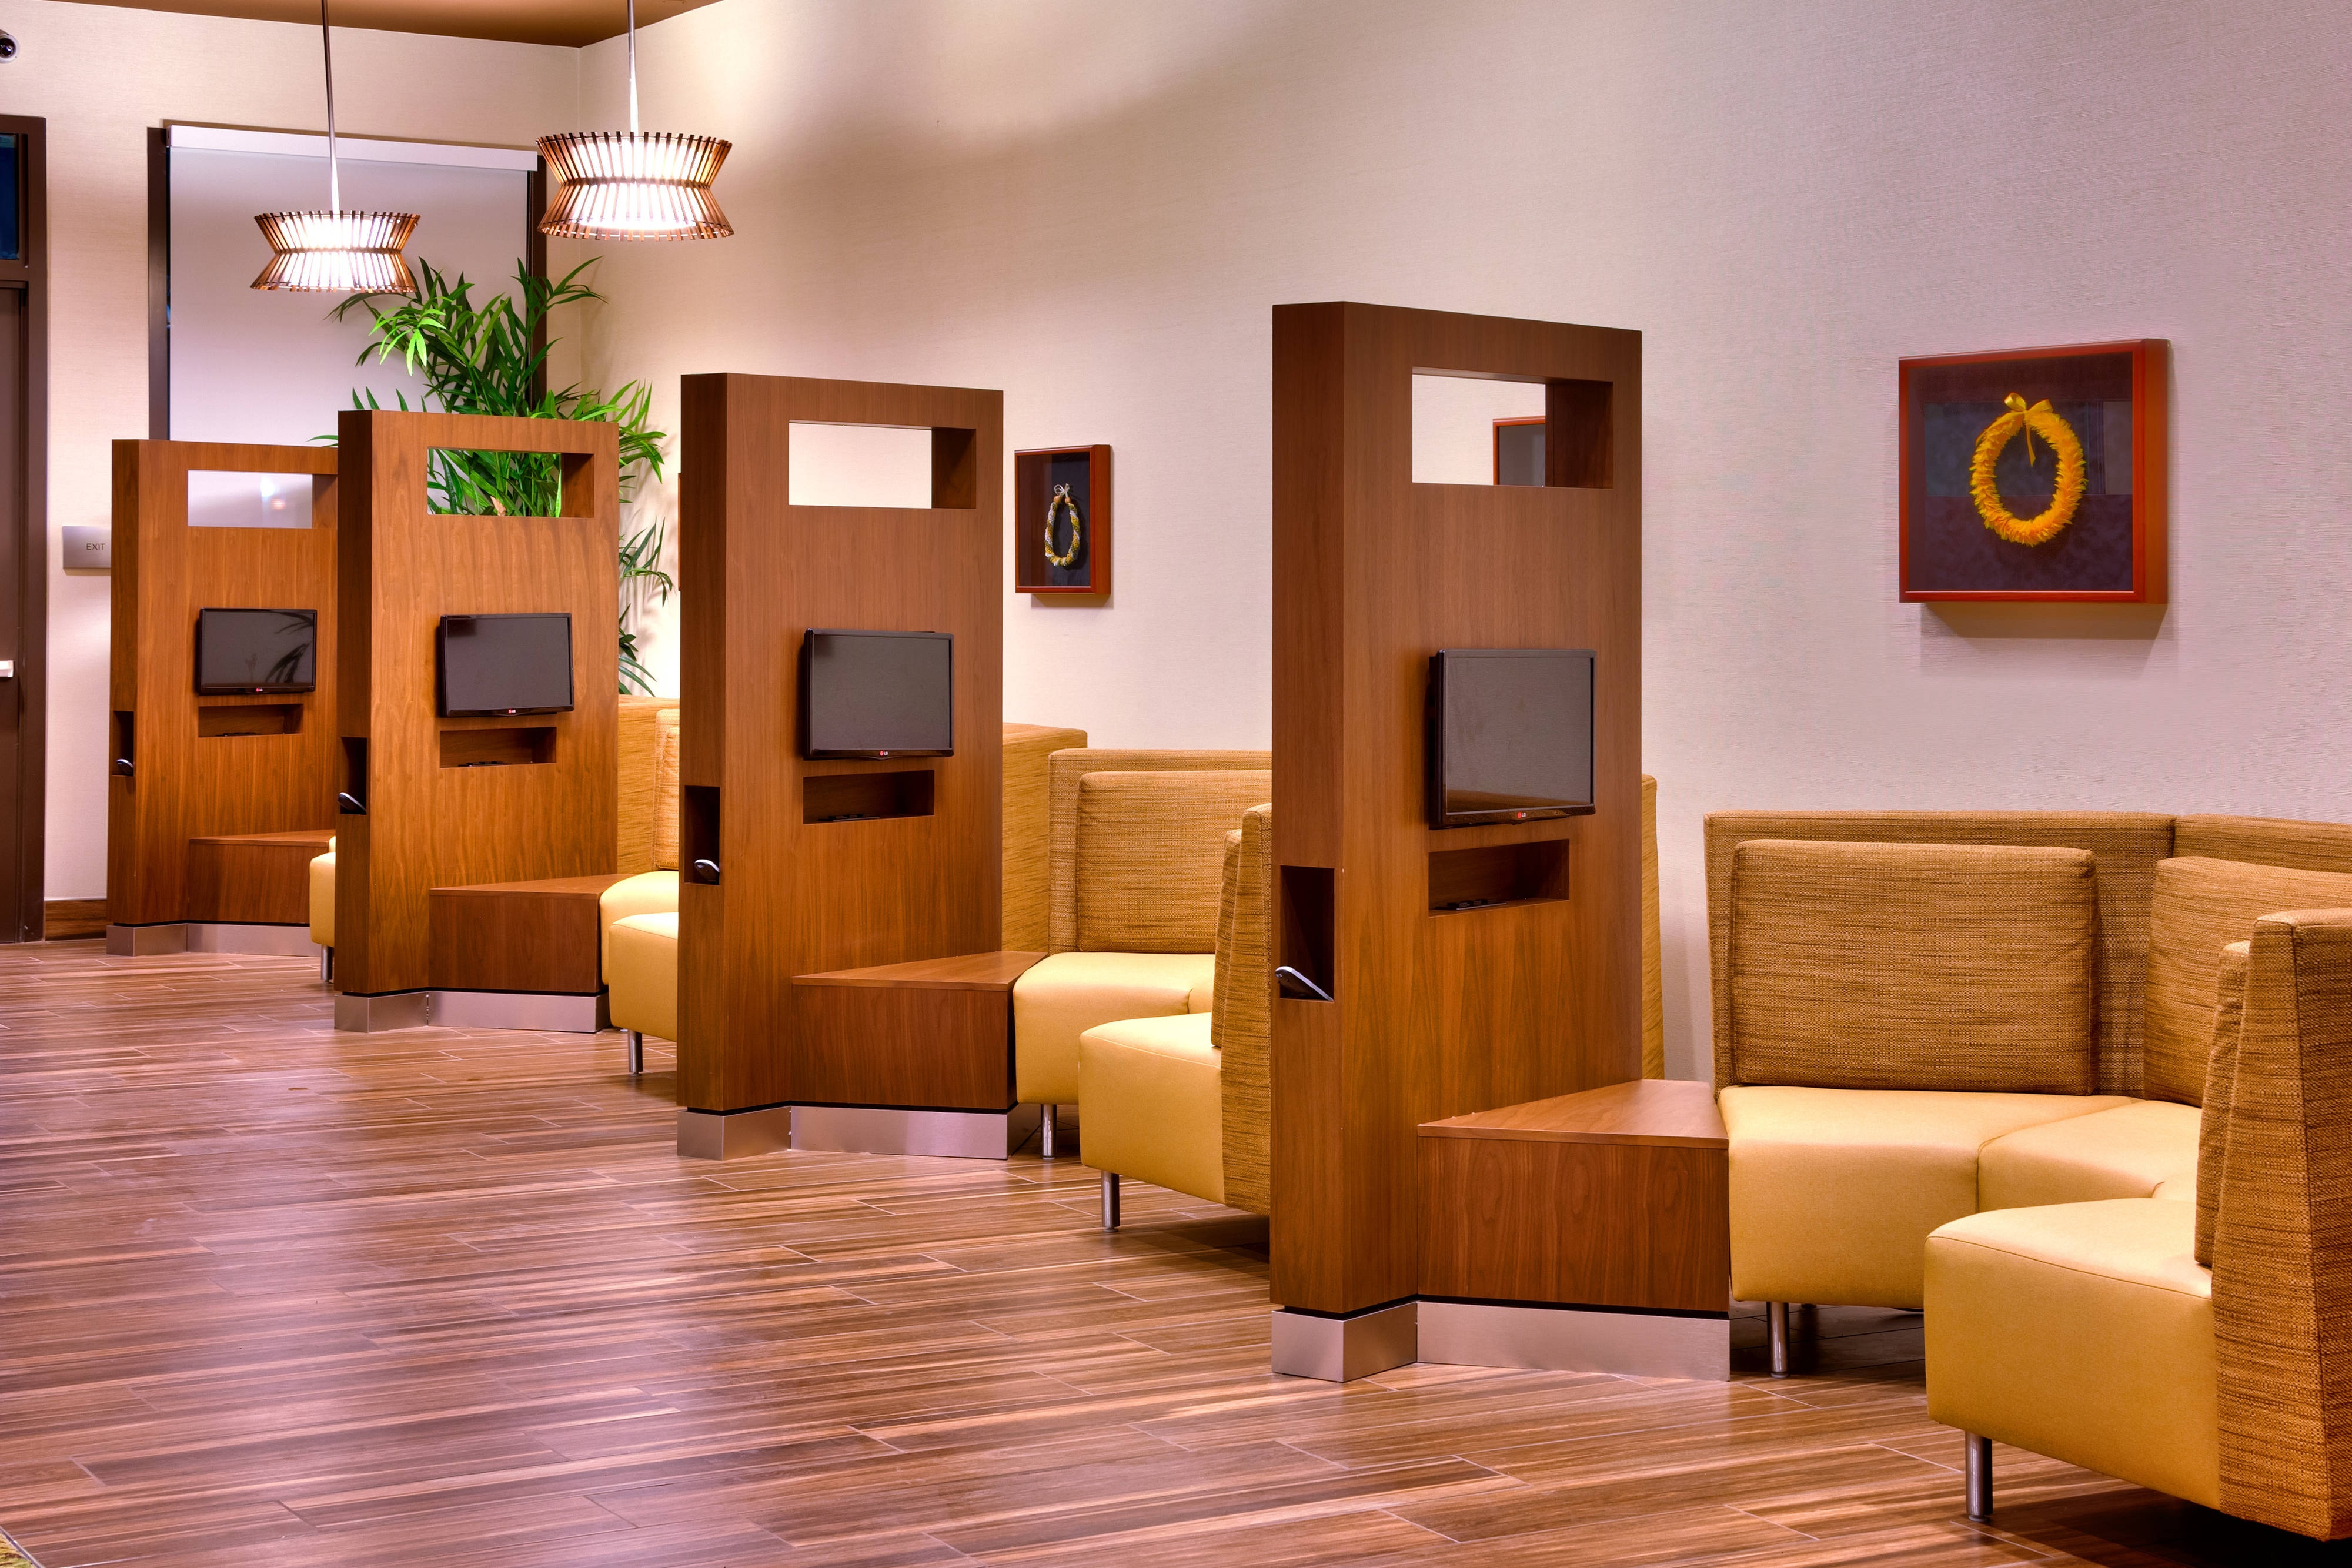 Laie Hawaii hotel media pods